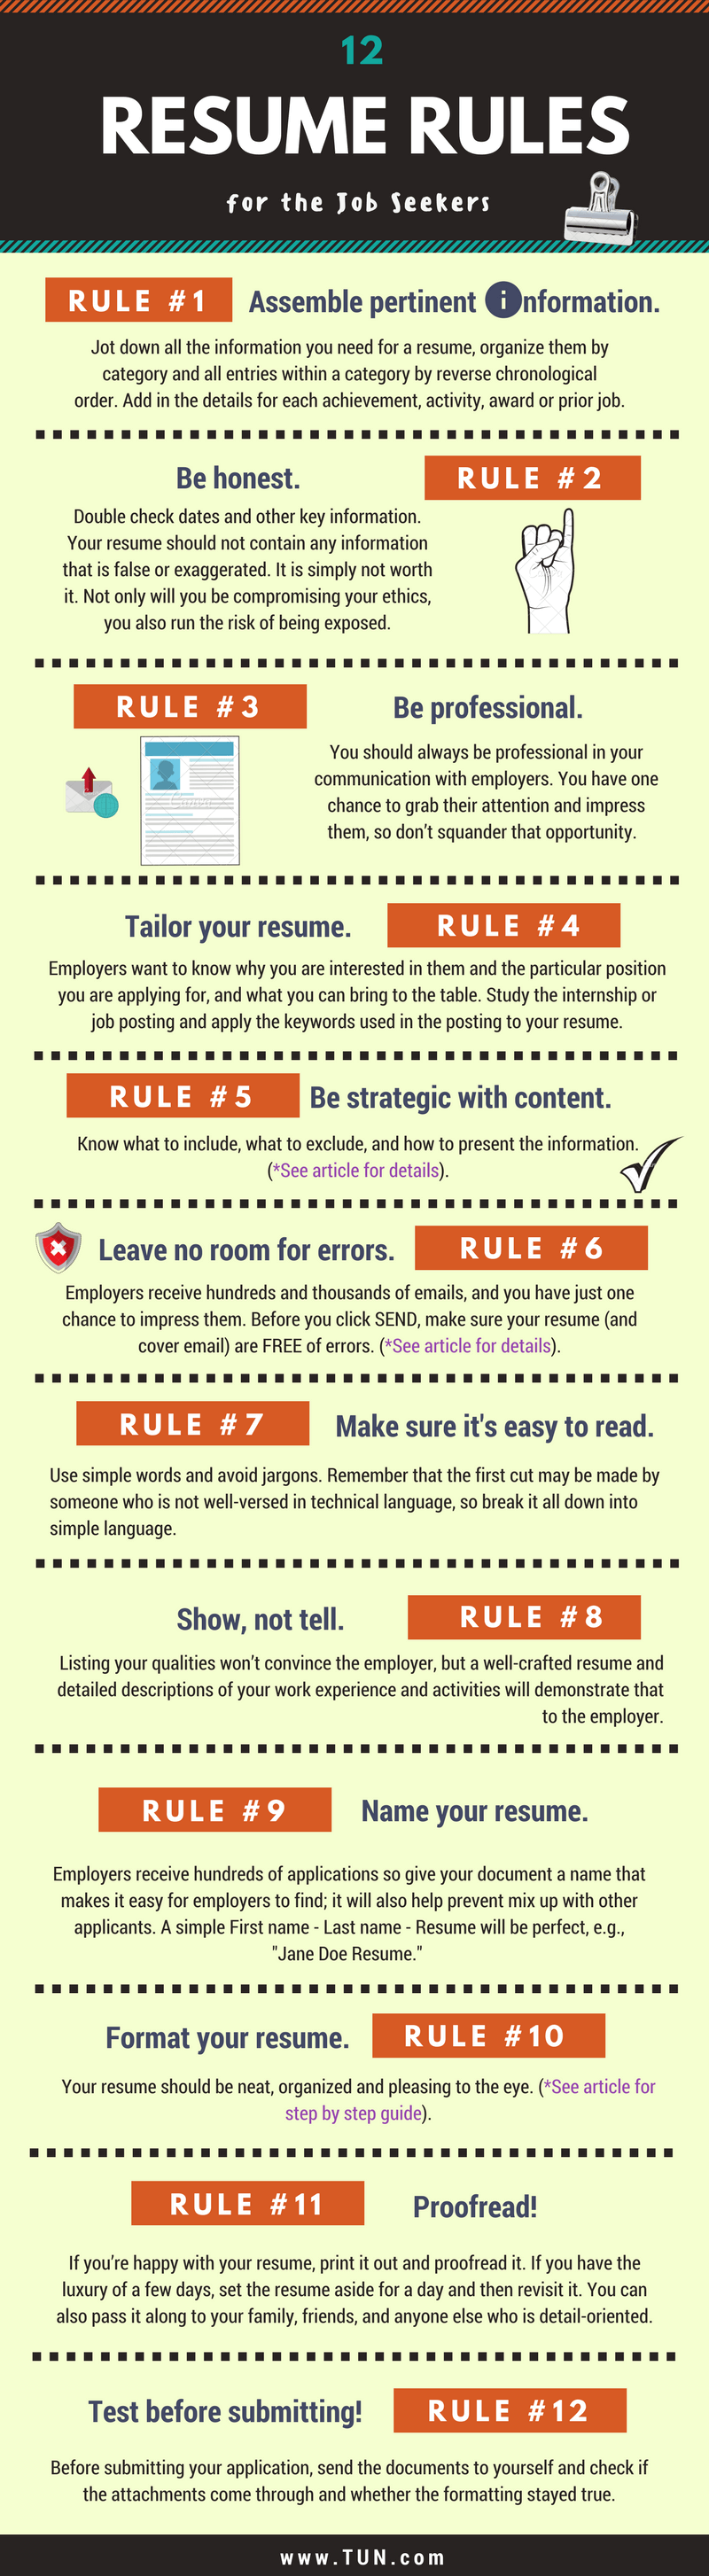 Resume Cover Letter Writing Tips Infographic | Useful Classroom ...